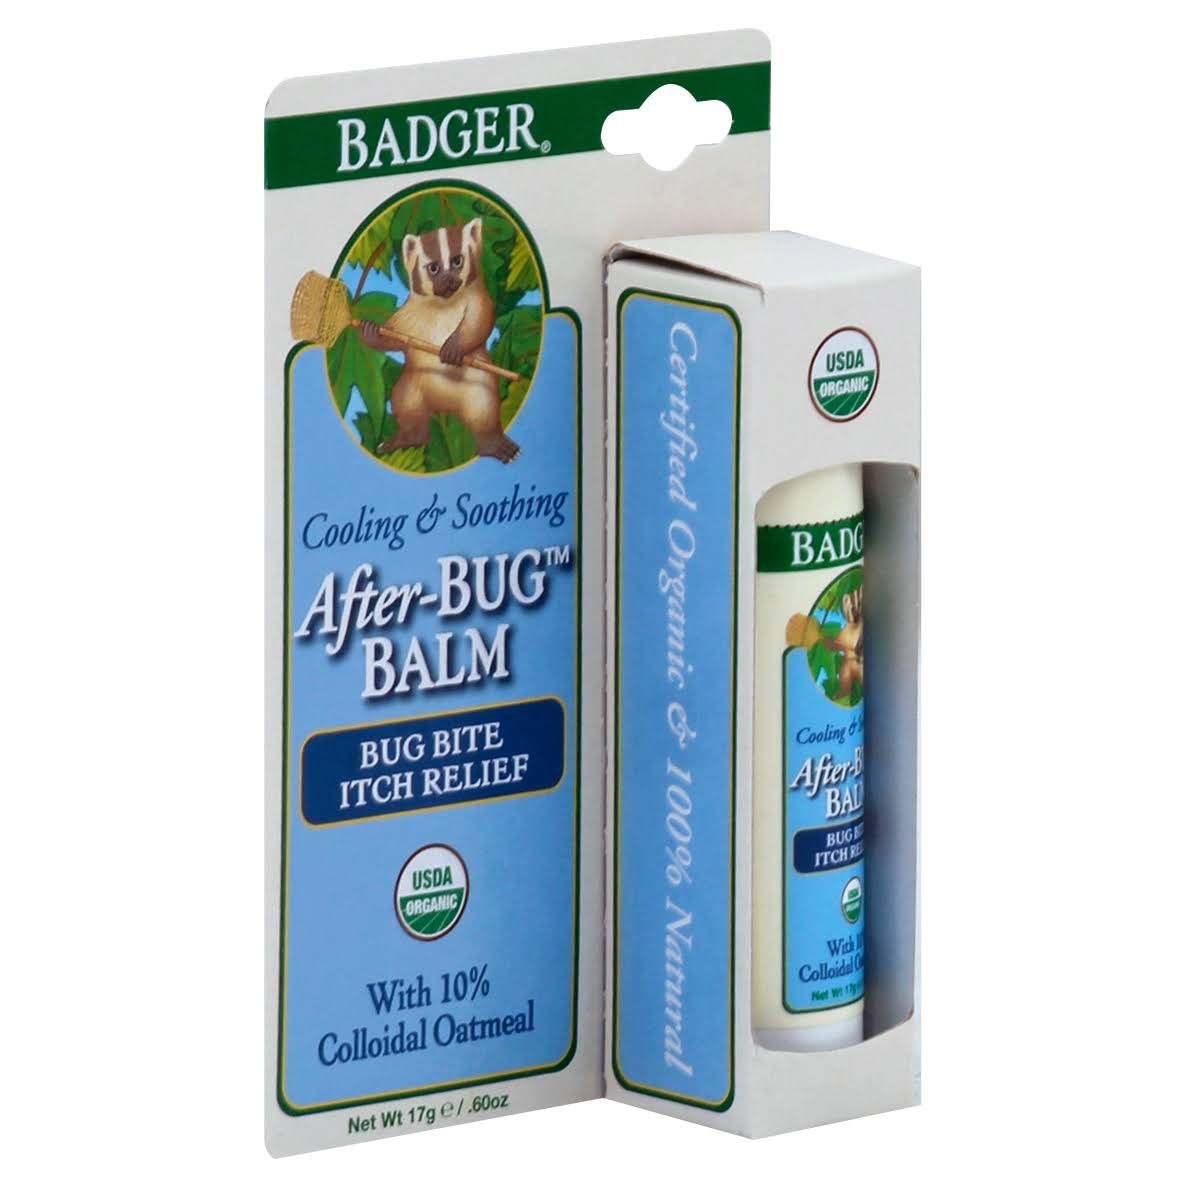 Badger After-Bug Balm Itch Relief Stick